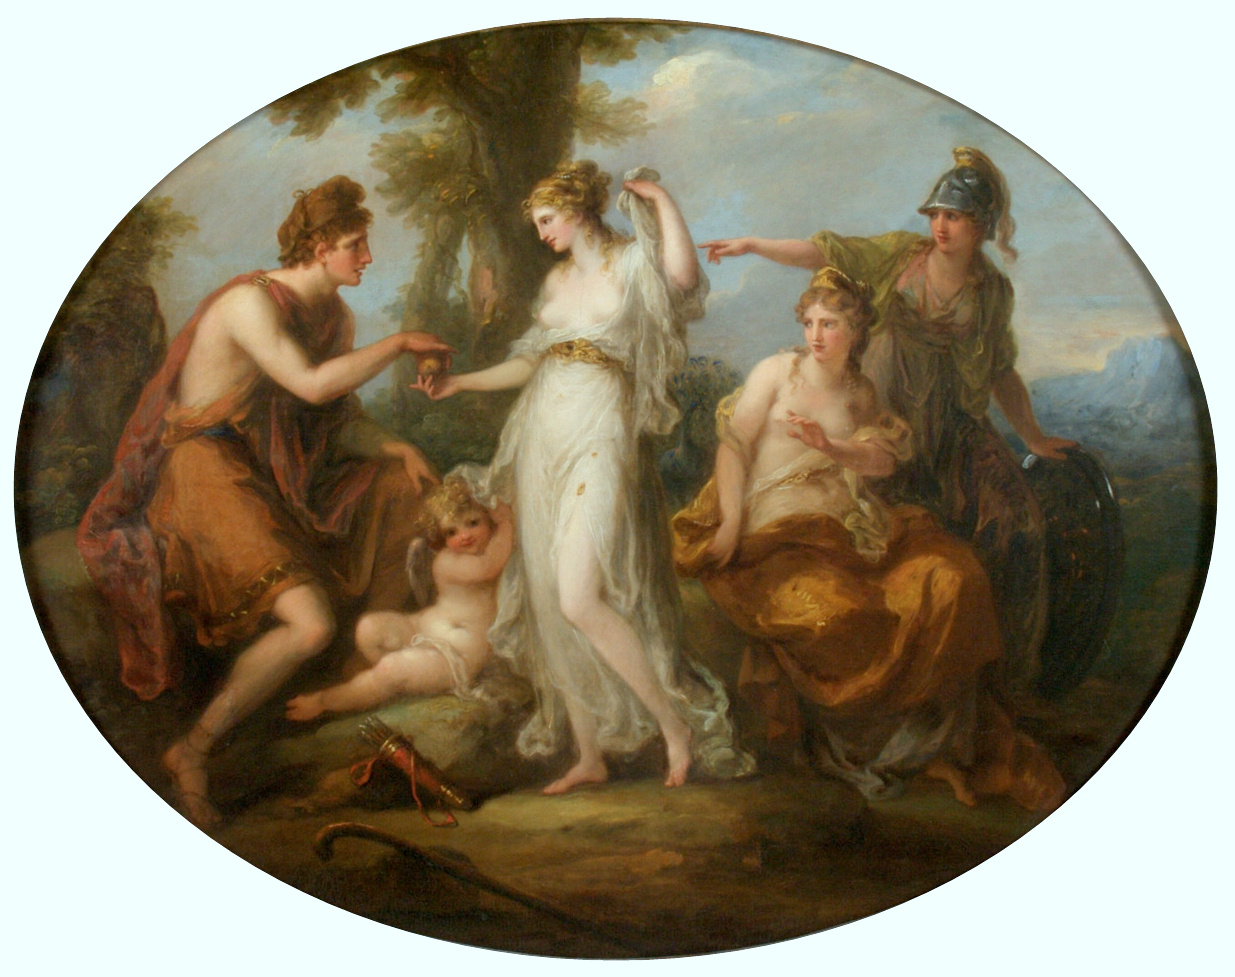 The Judgement of Paris - Angelica Kauffman